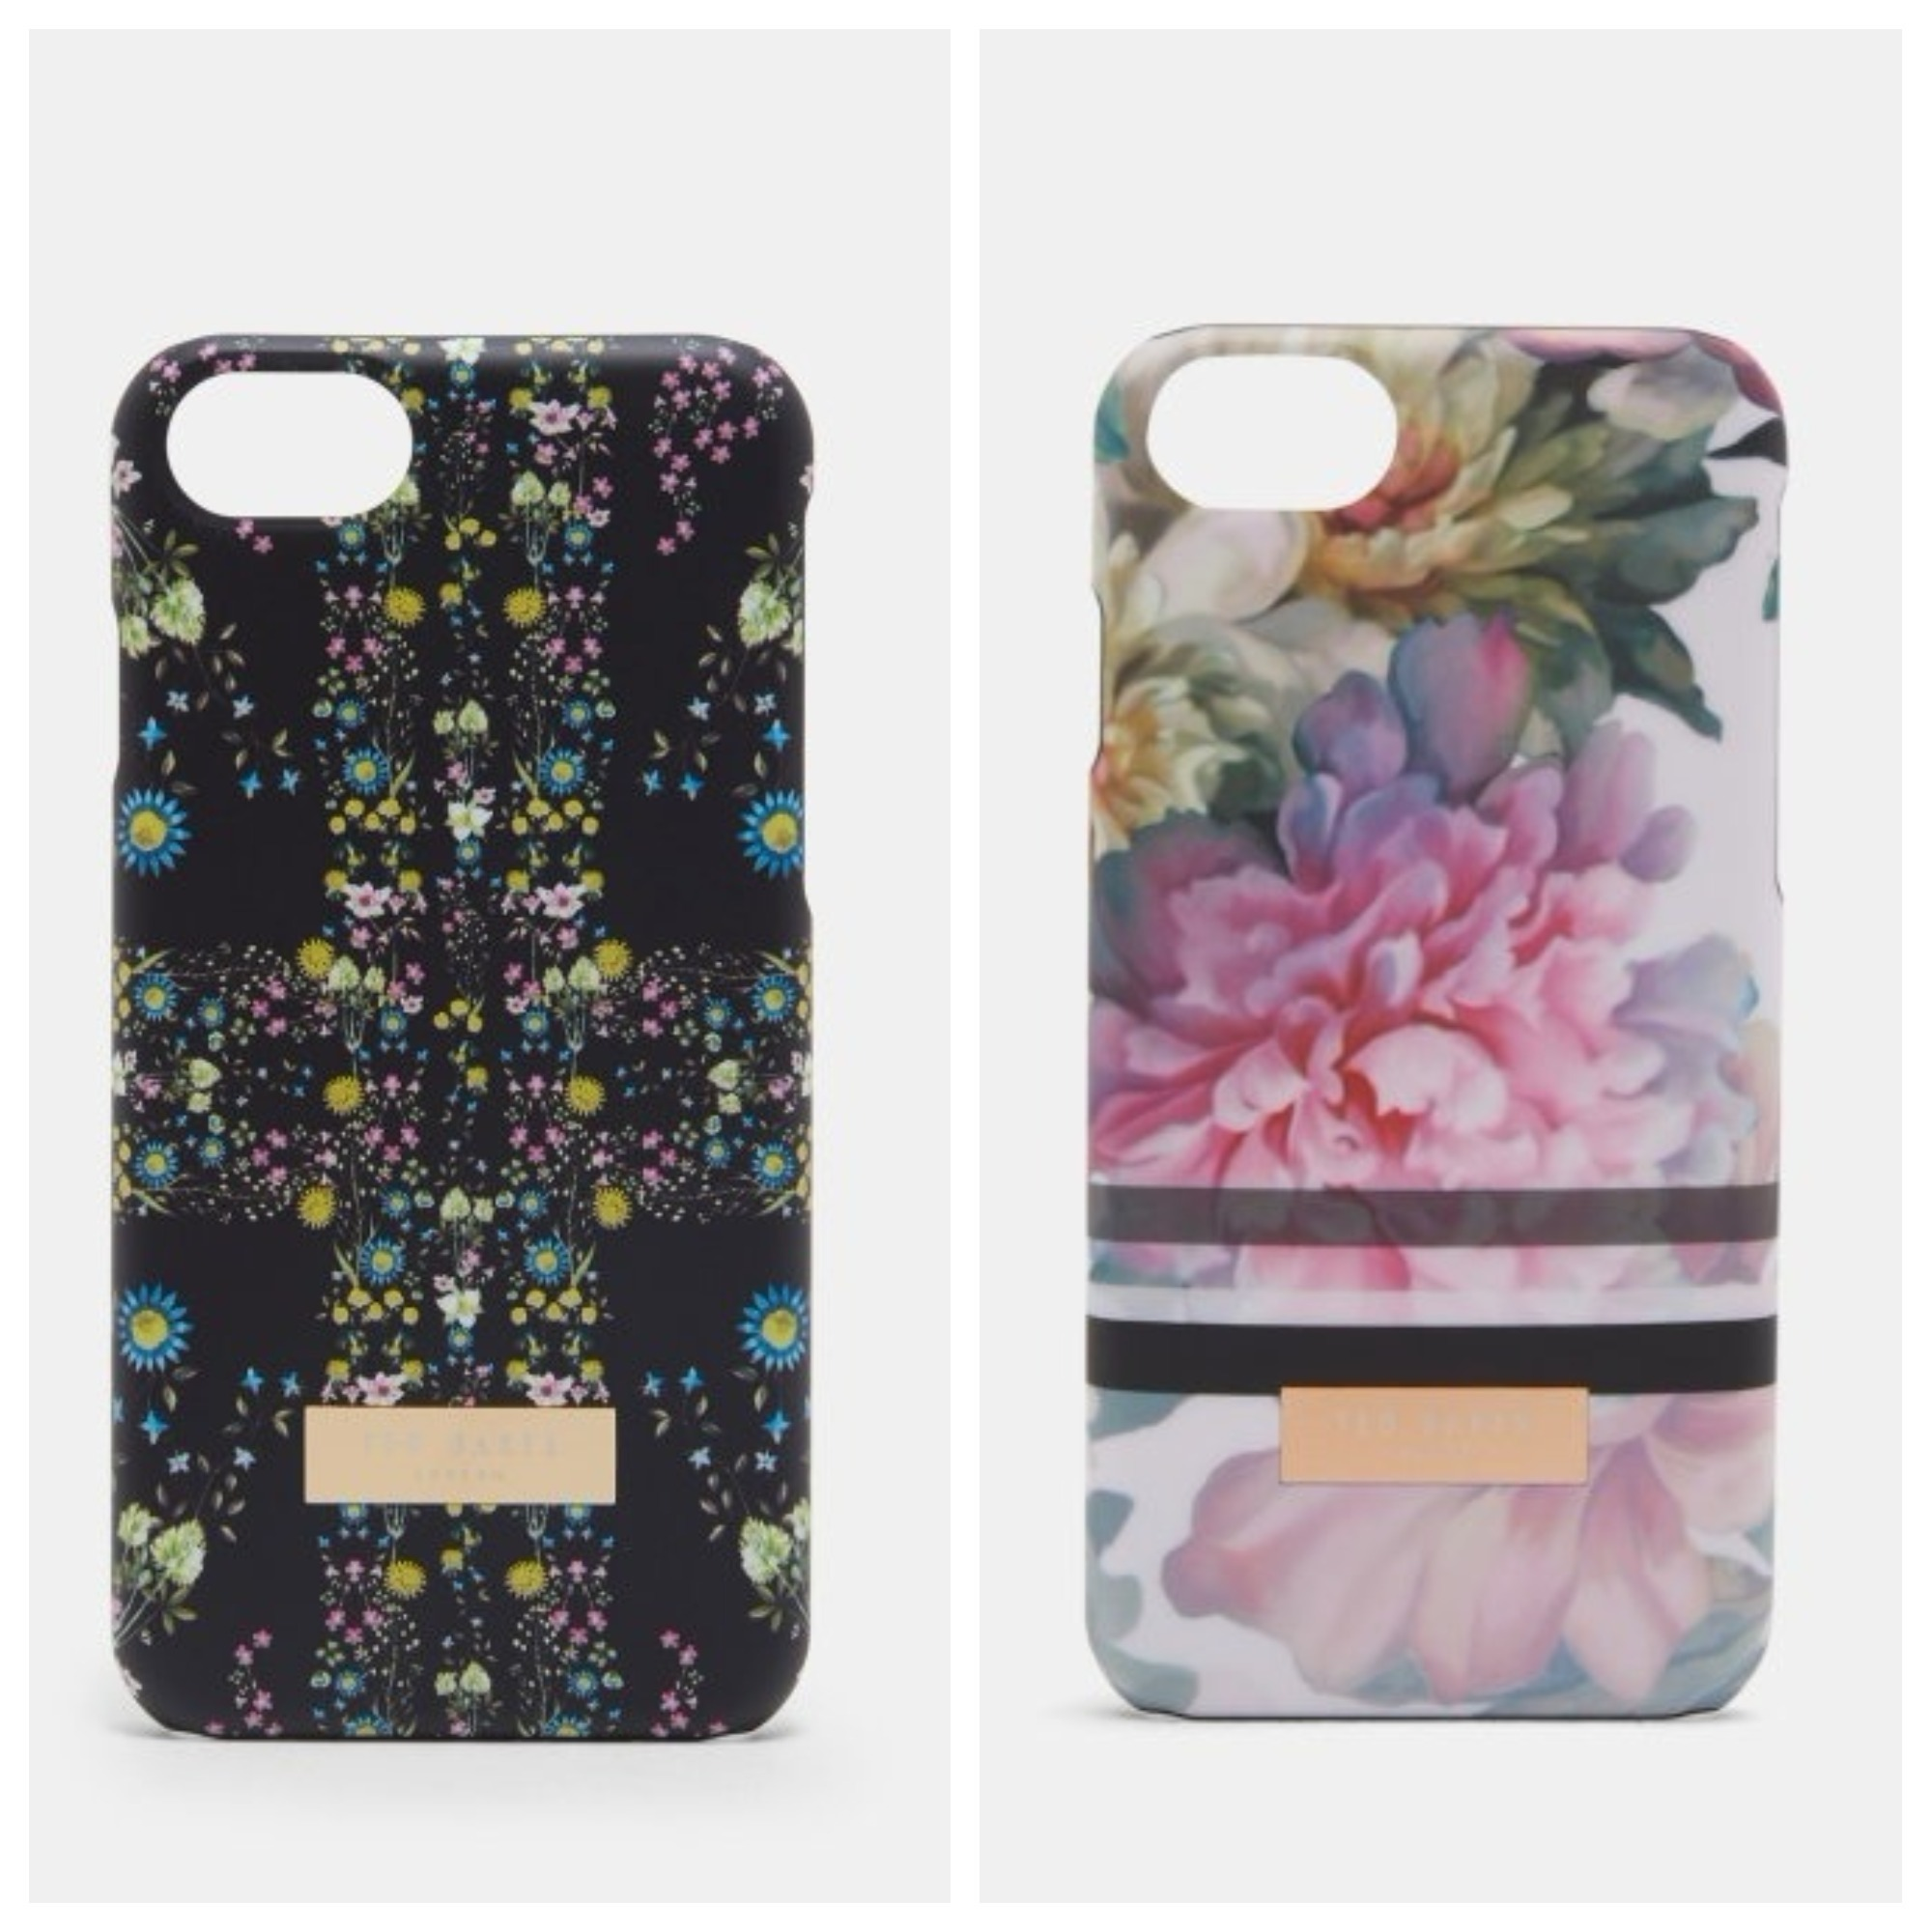 TED BAKER♡フローラルプリント iPhone 6/6S/7 対応ケース